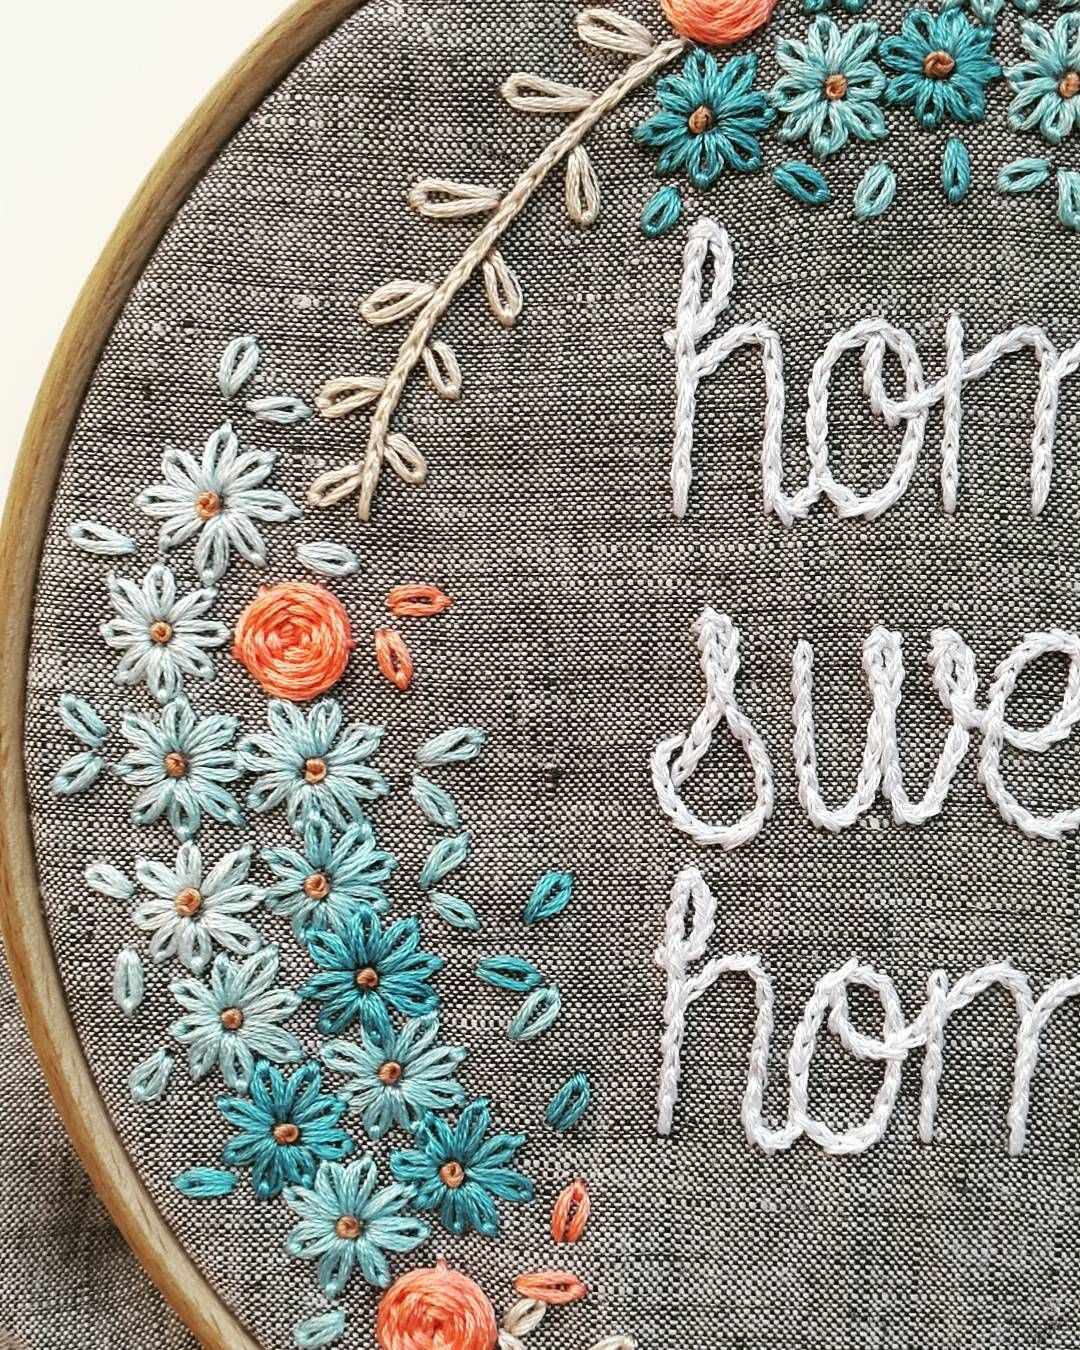 b70cea0c8cb02 Lovely little flowers in this embroidery hoop. | Feelin' Stitchy ...